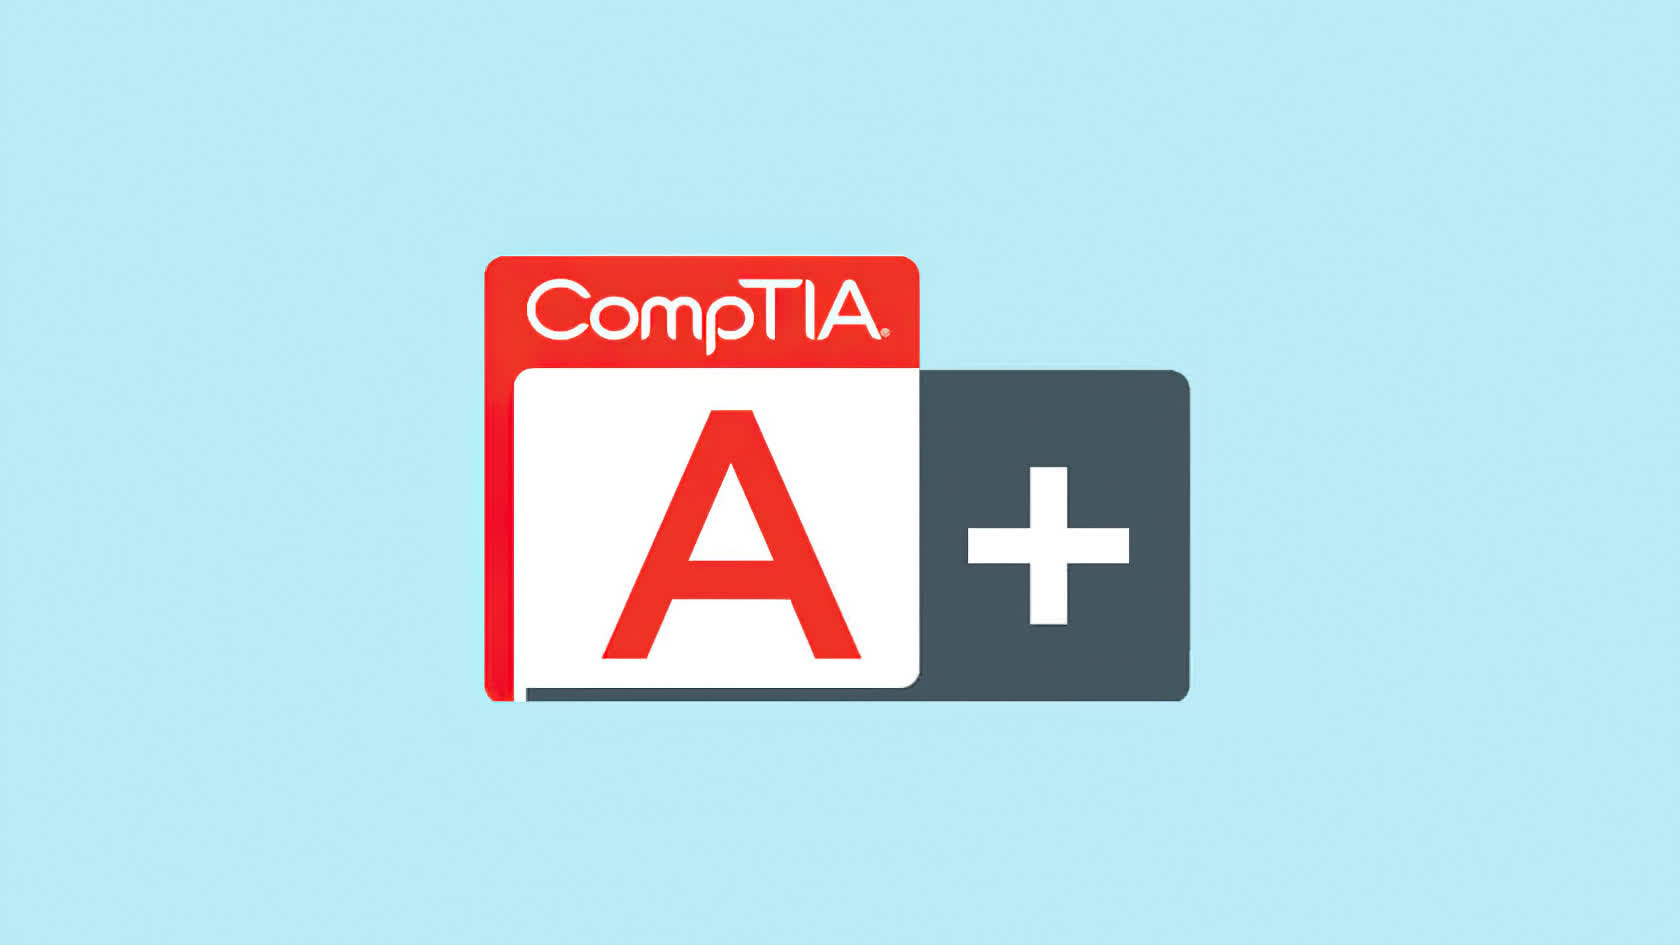 Get CompTIA certified and validate your IT knowledge and skills